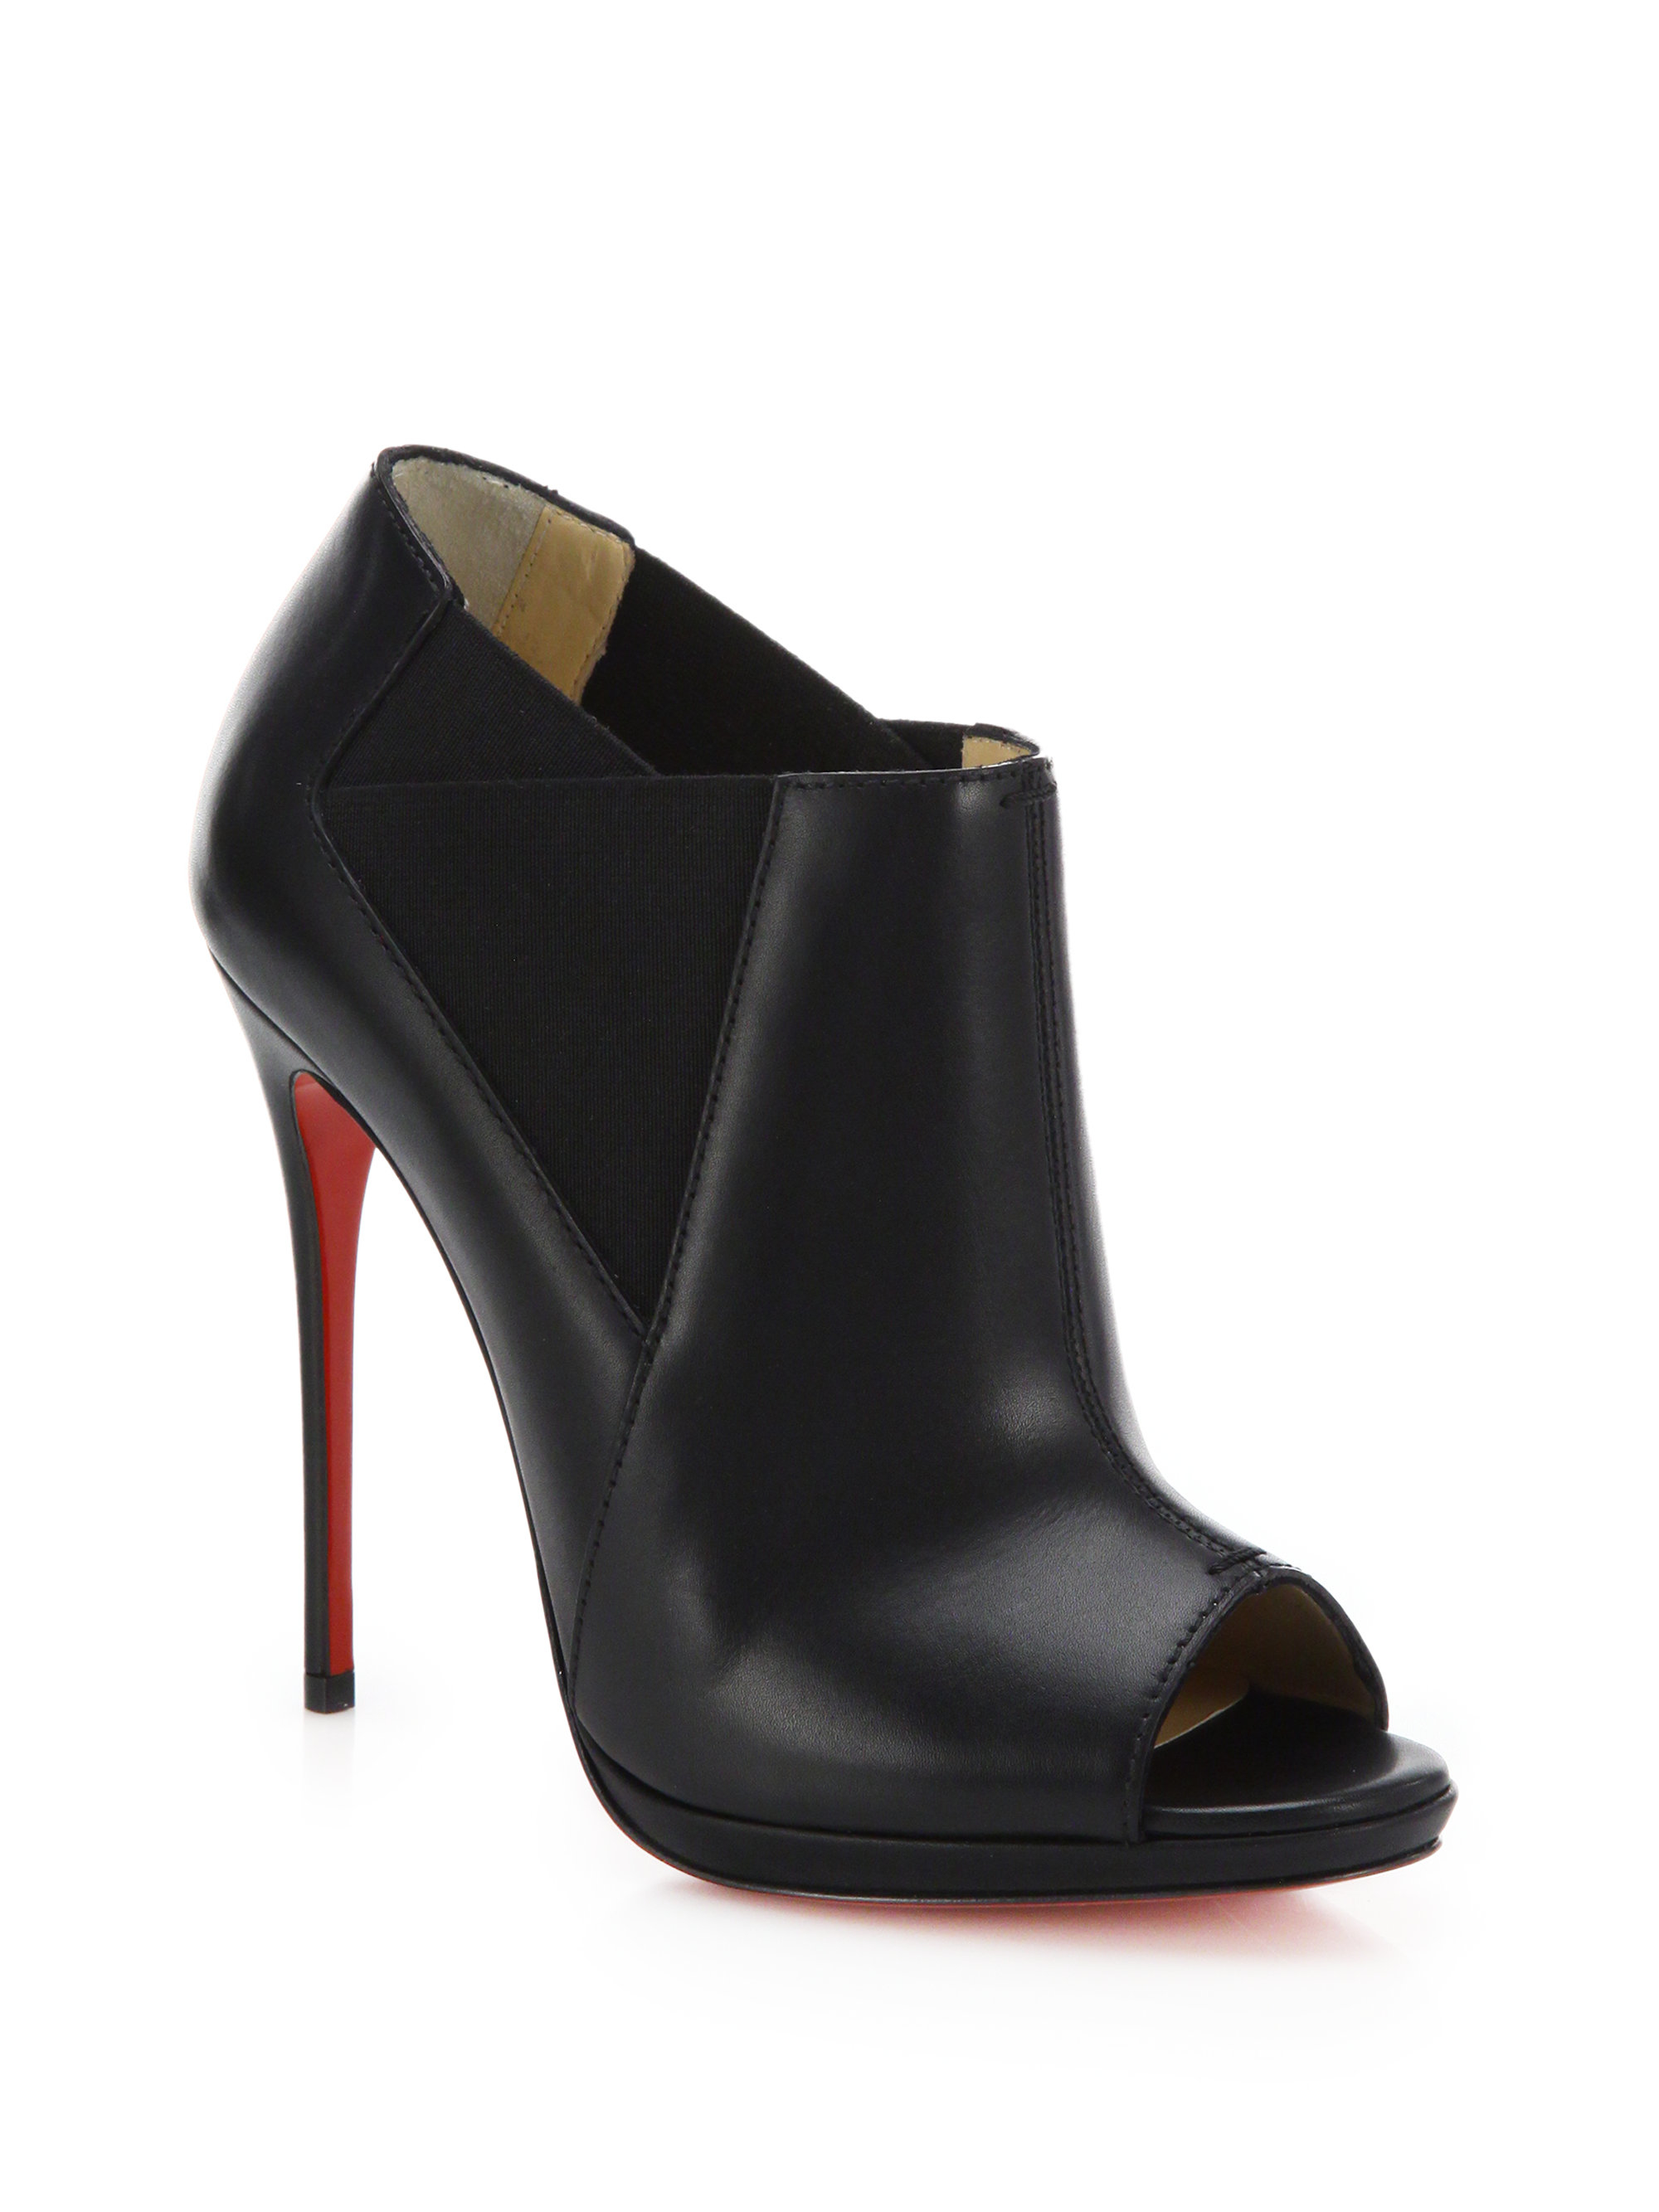 c4e8e7d20949 ... germany lyst christian louboutin bootstagram leather peep toe booties  in black 56f19 14090